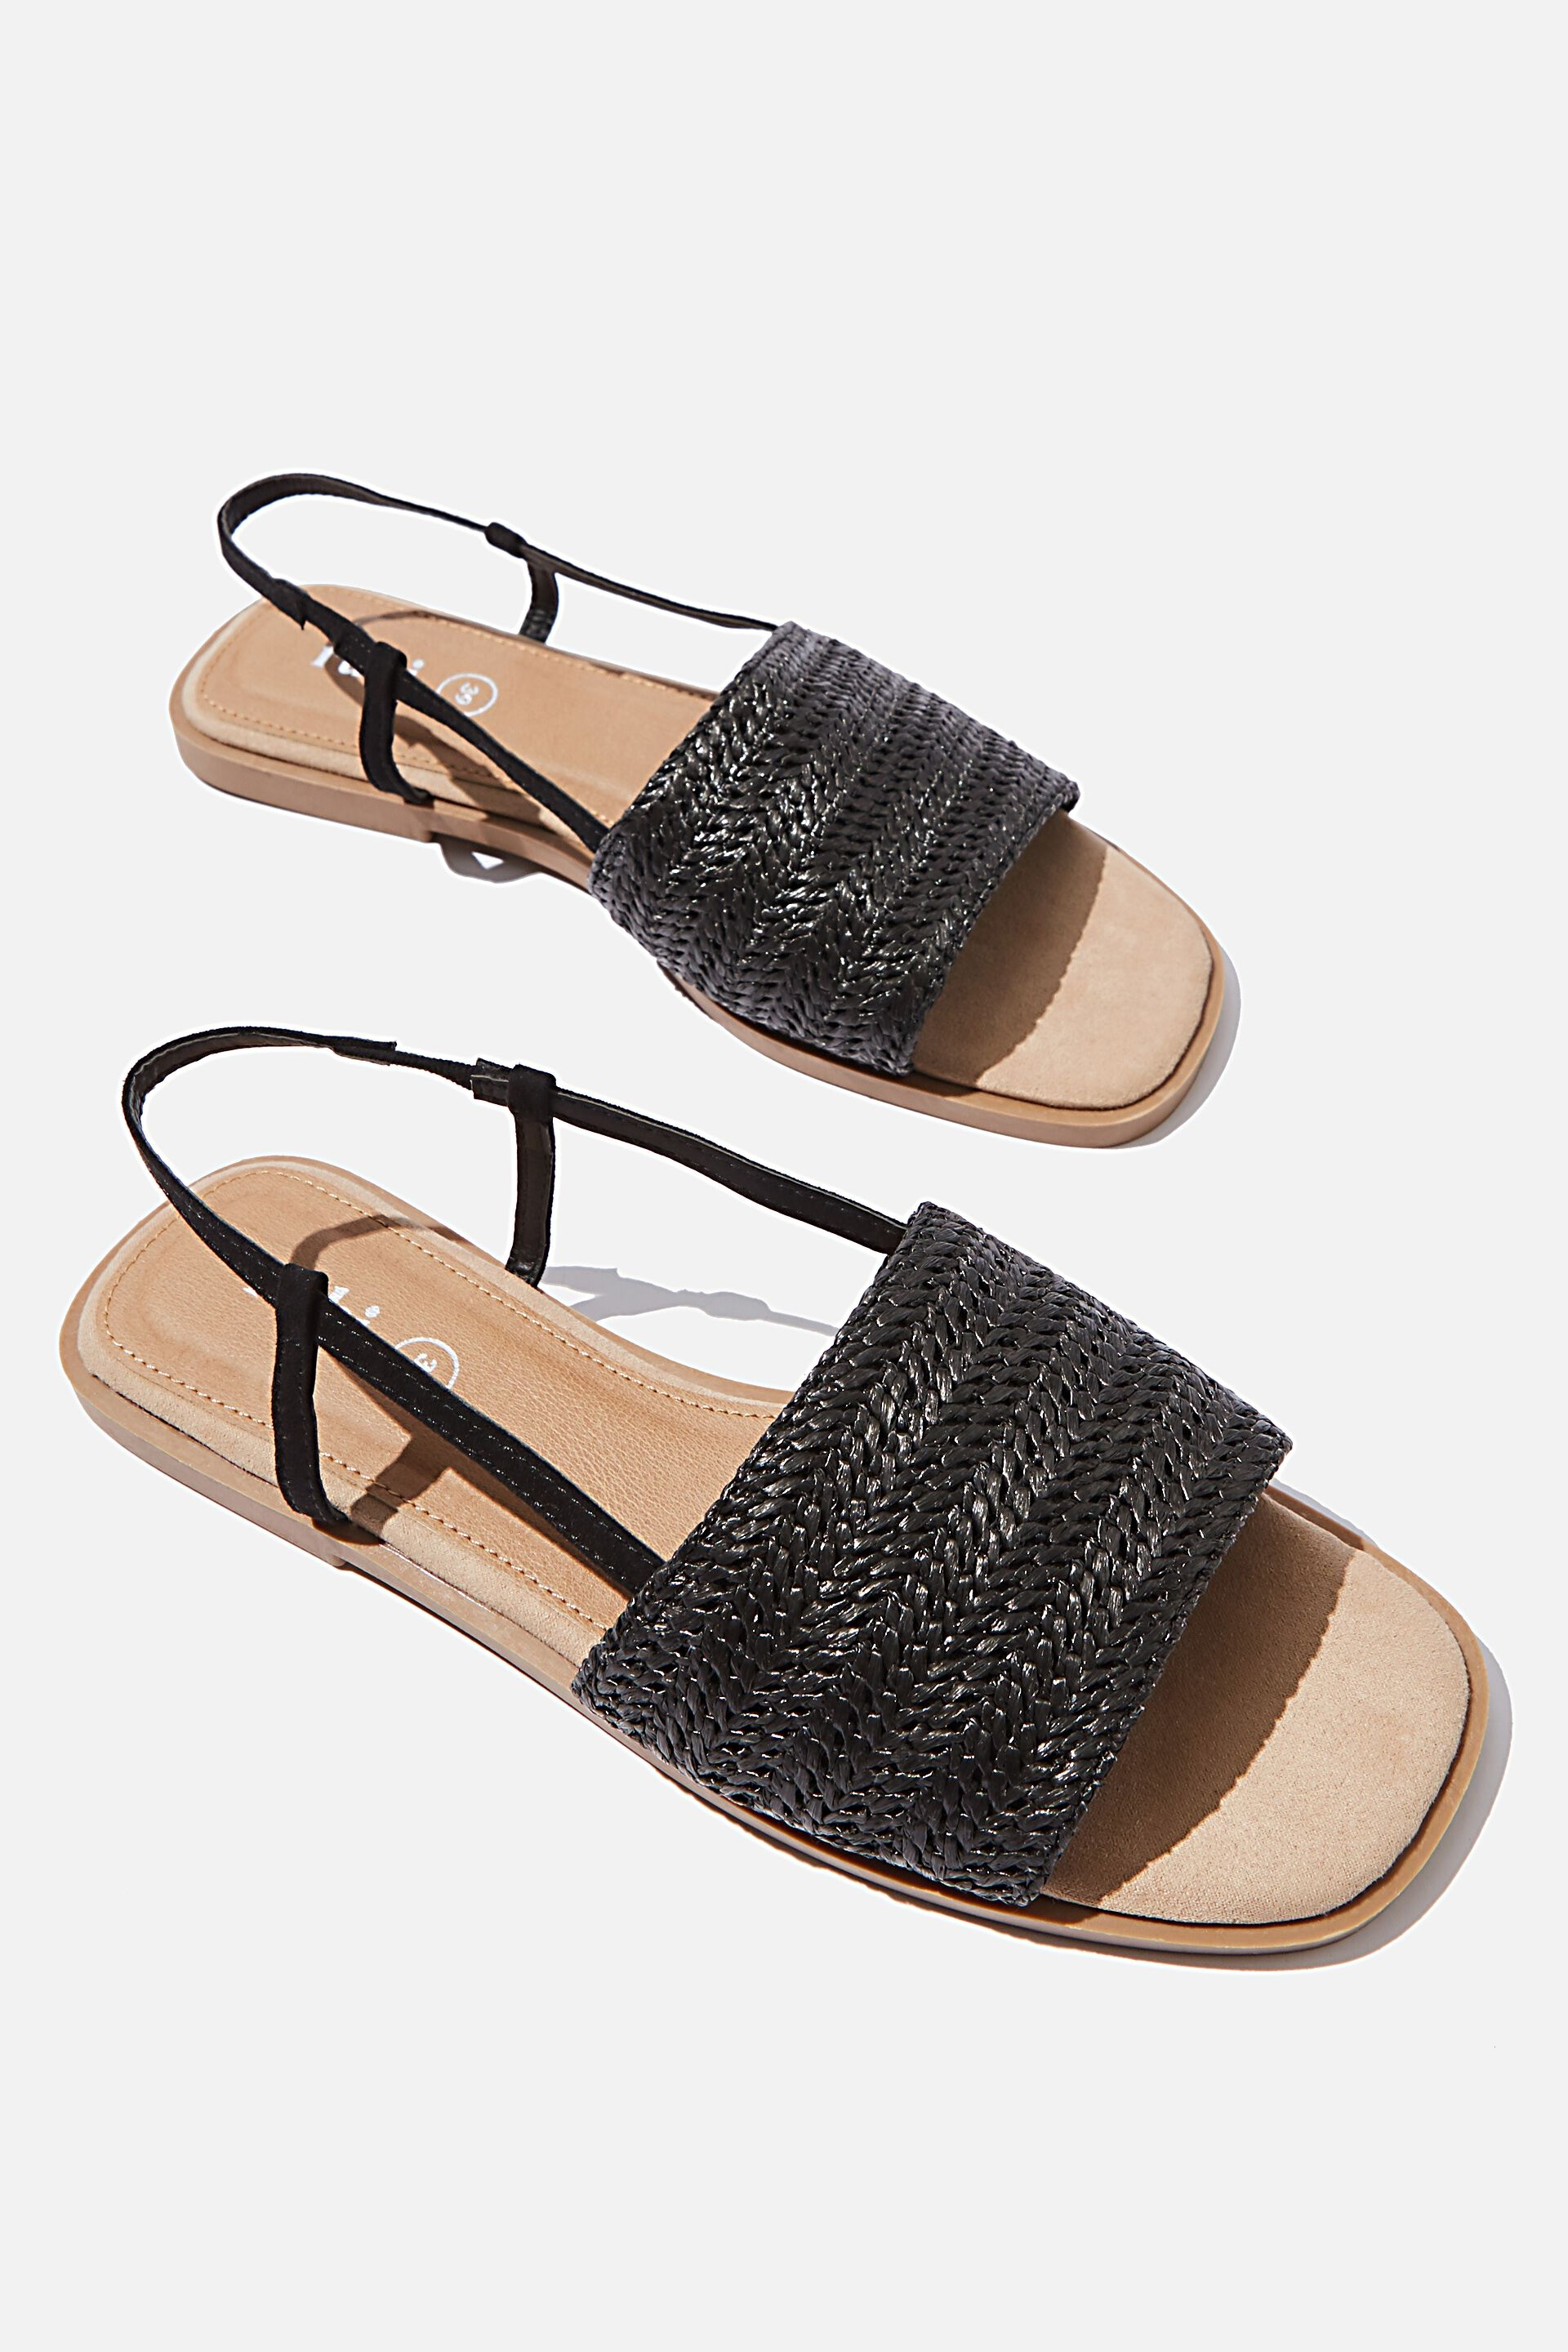 Piper Sling Back Sandal | Women's Fashion Accessories